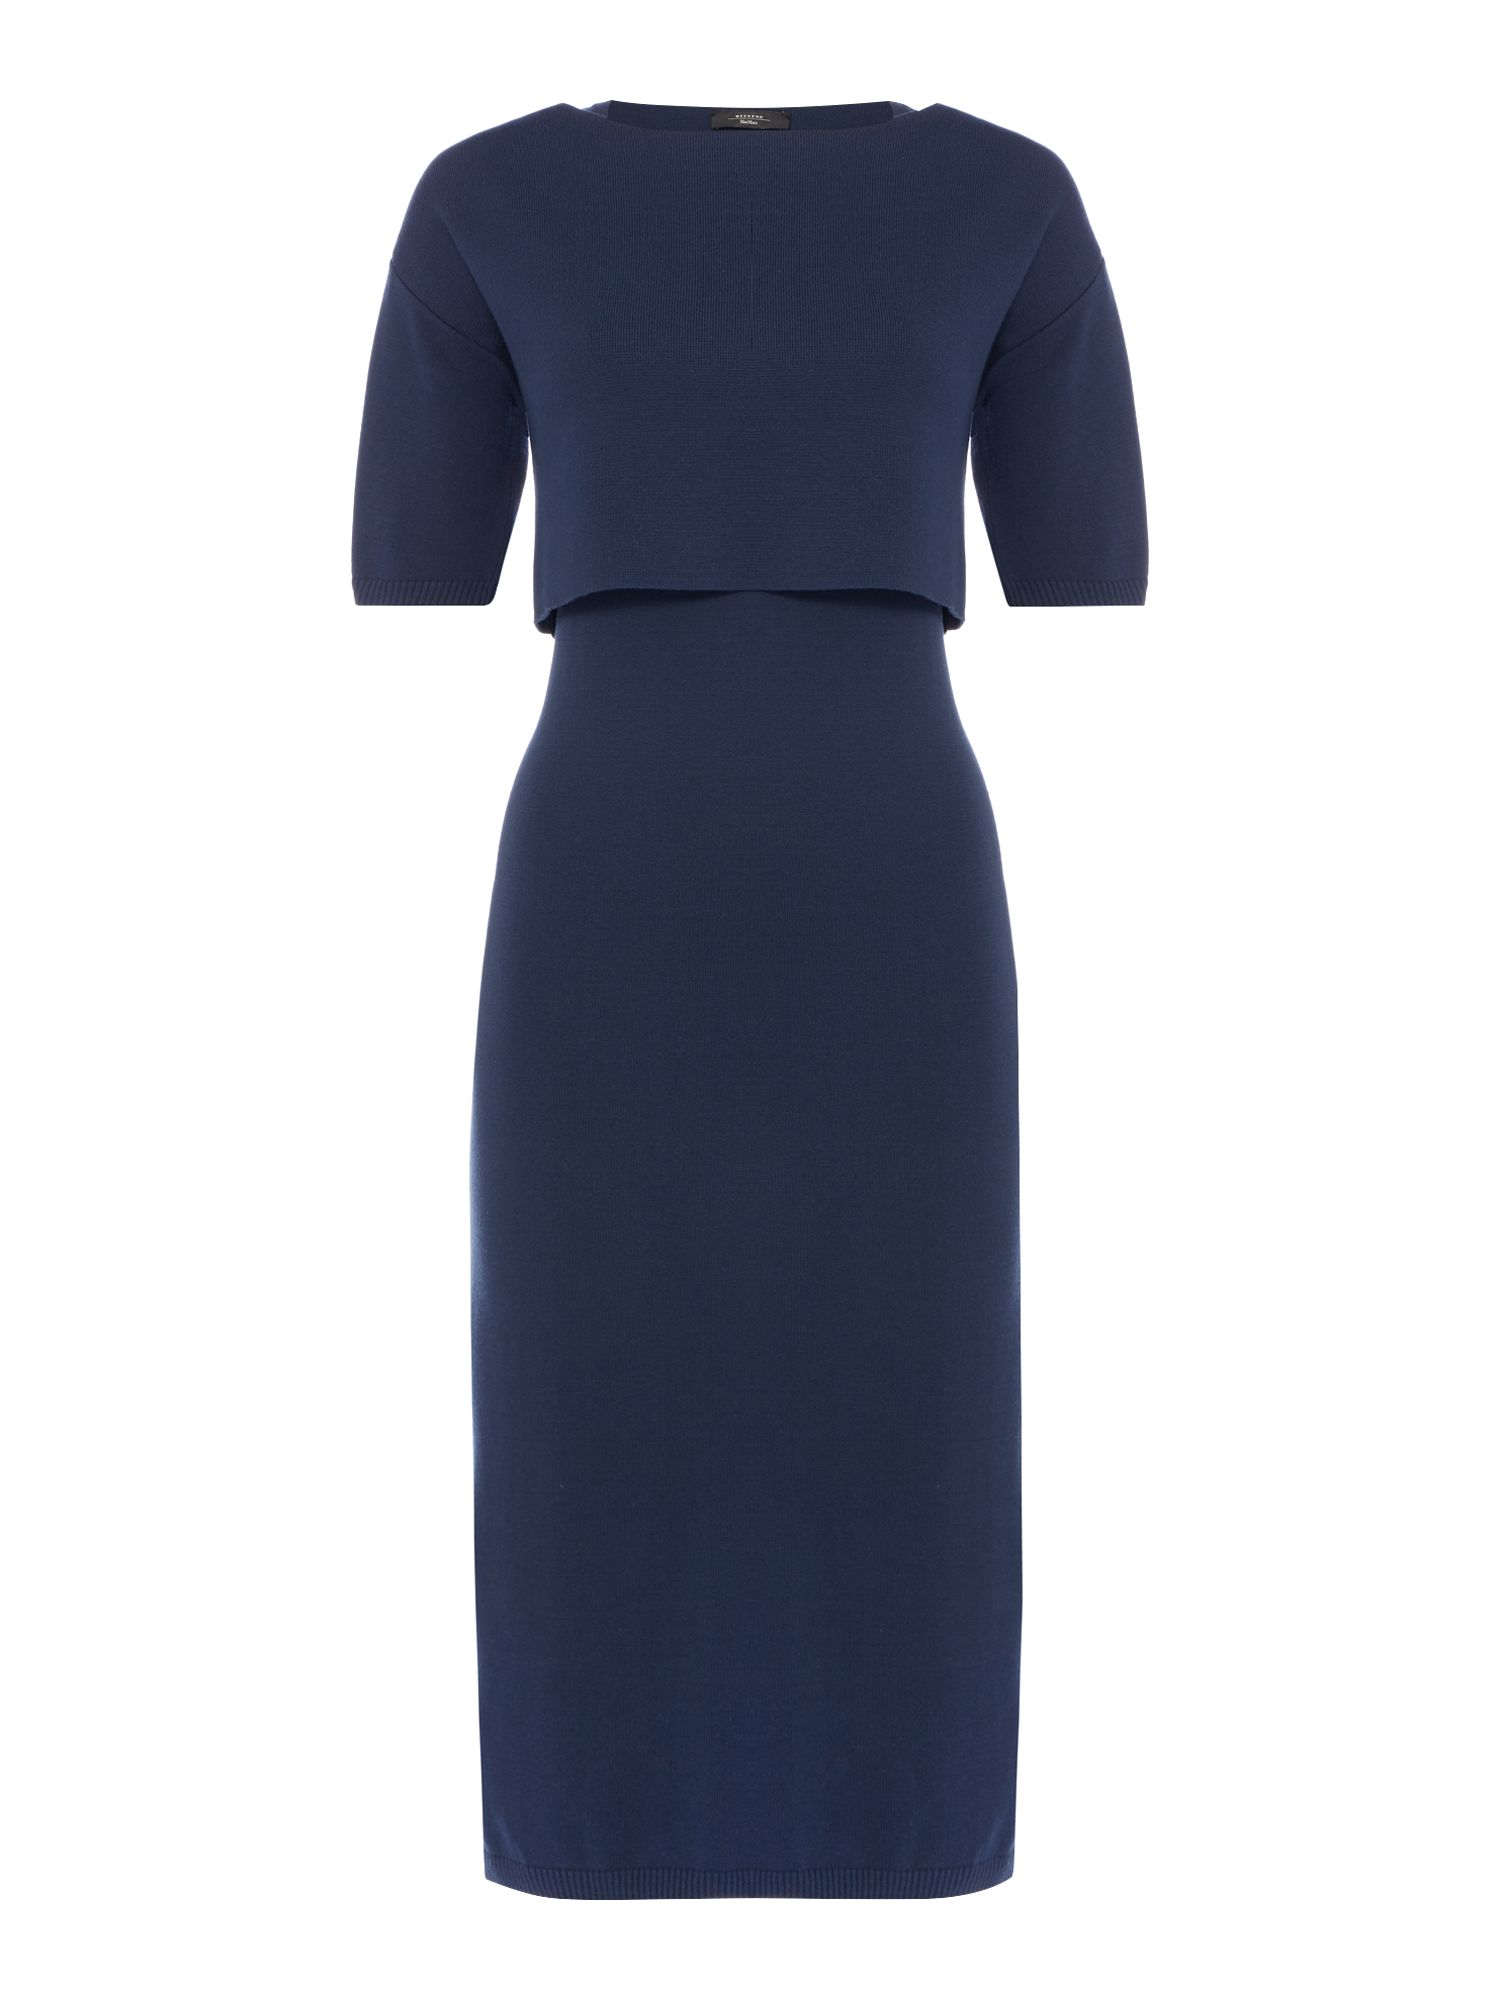 Max Mara Calata Two Piece Short Sleeve Dress Ultramarine